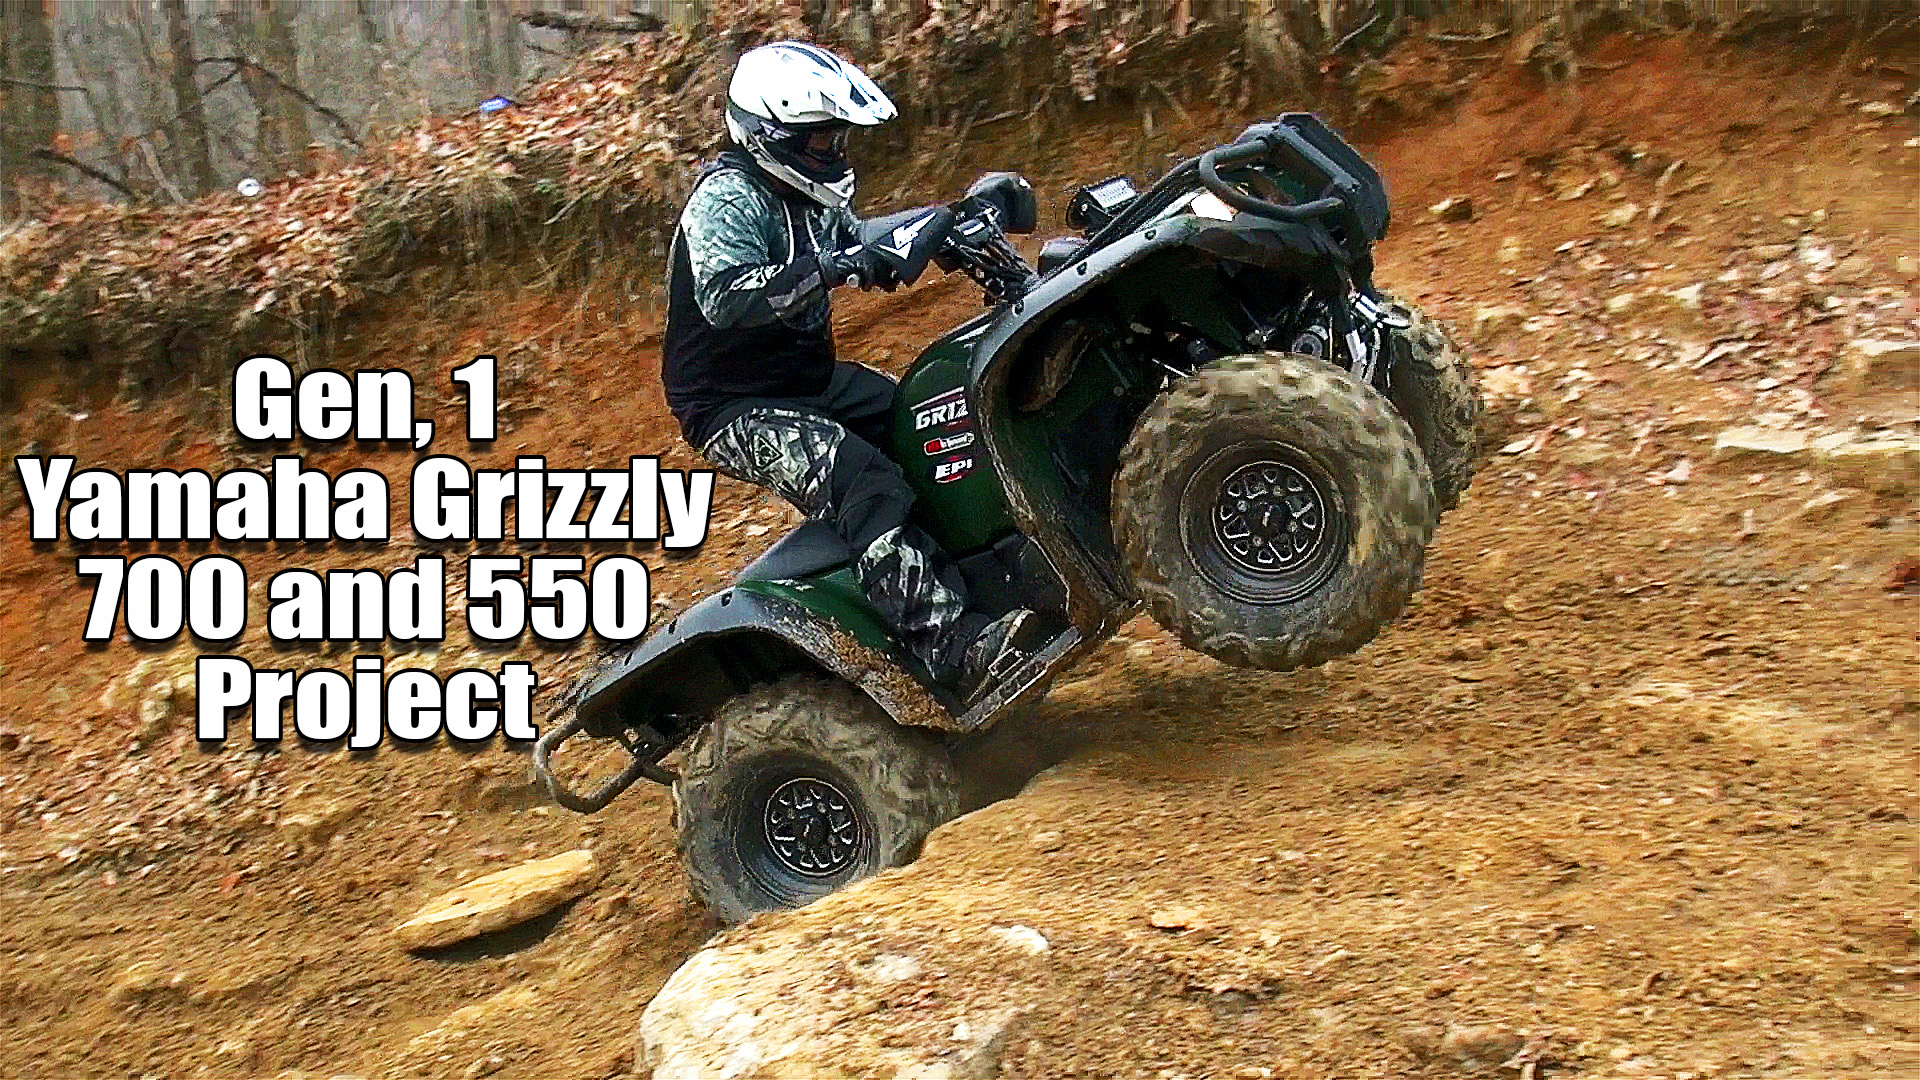 Yamaha Grizzly Tires Upgrade